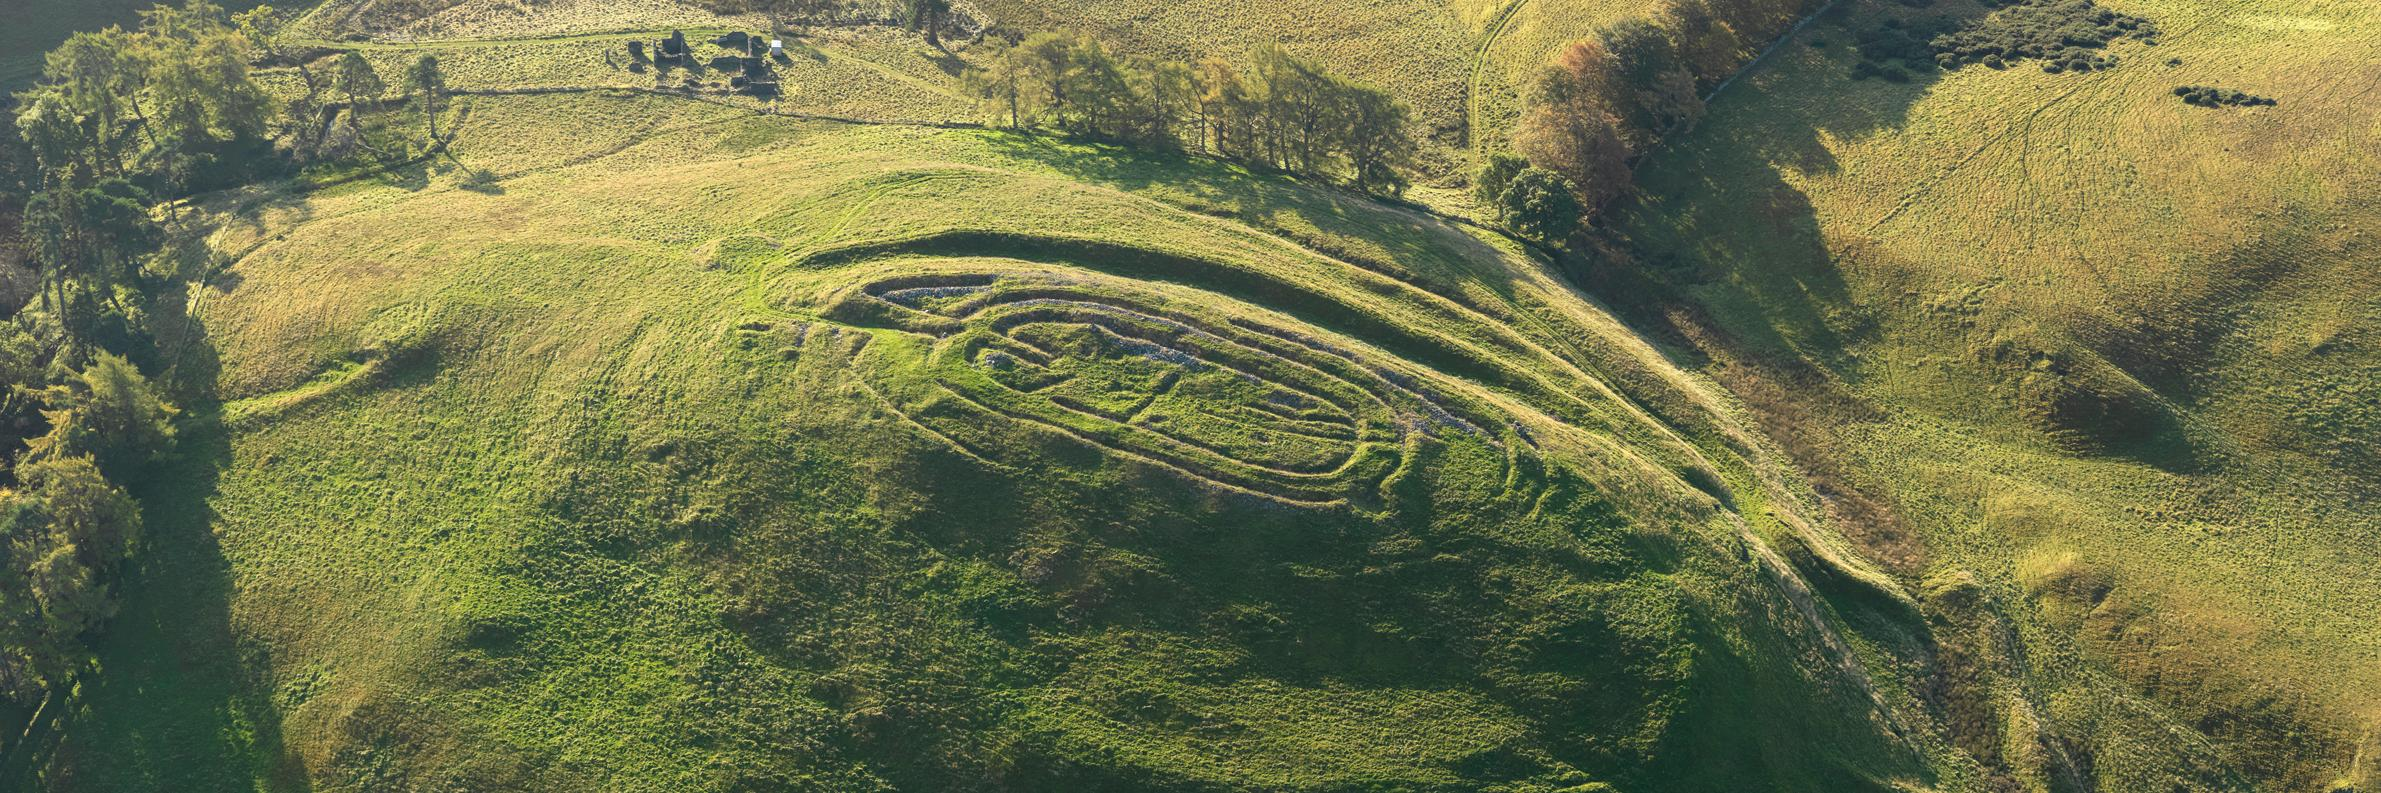 Iron Age hillfort aerial photograph